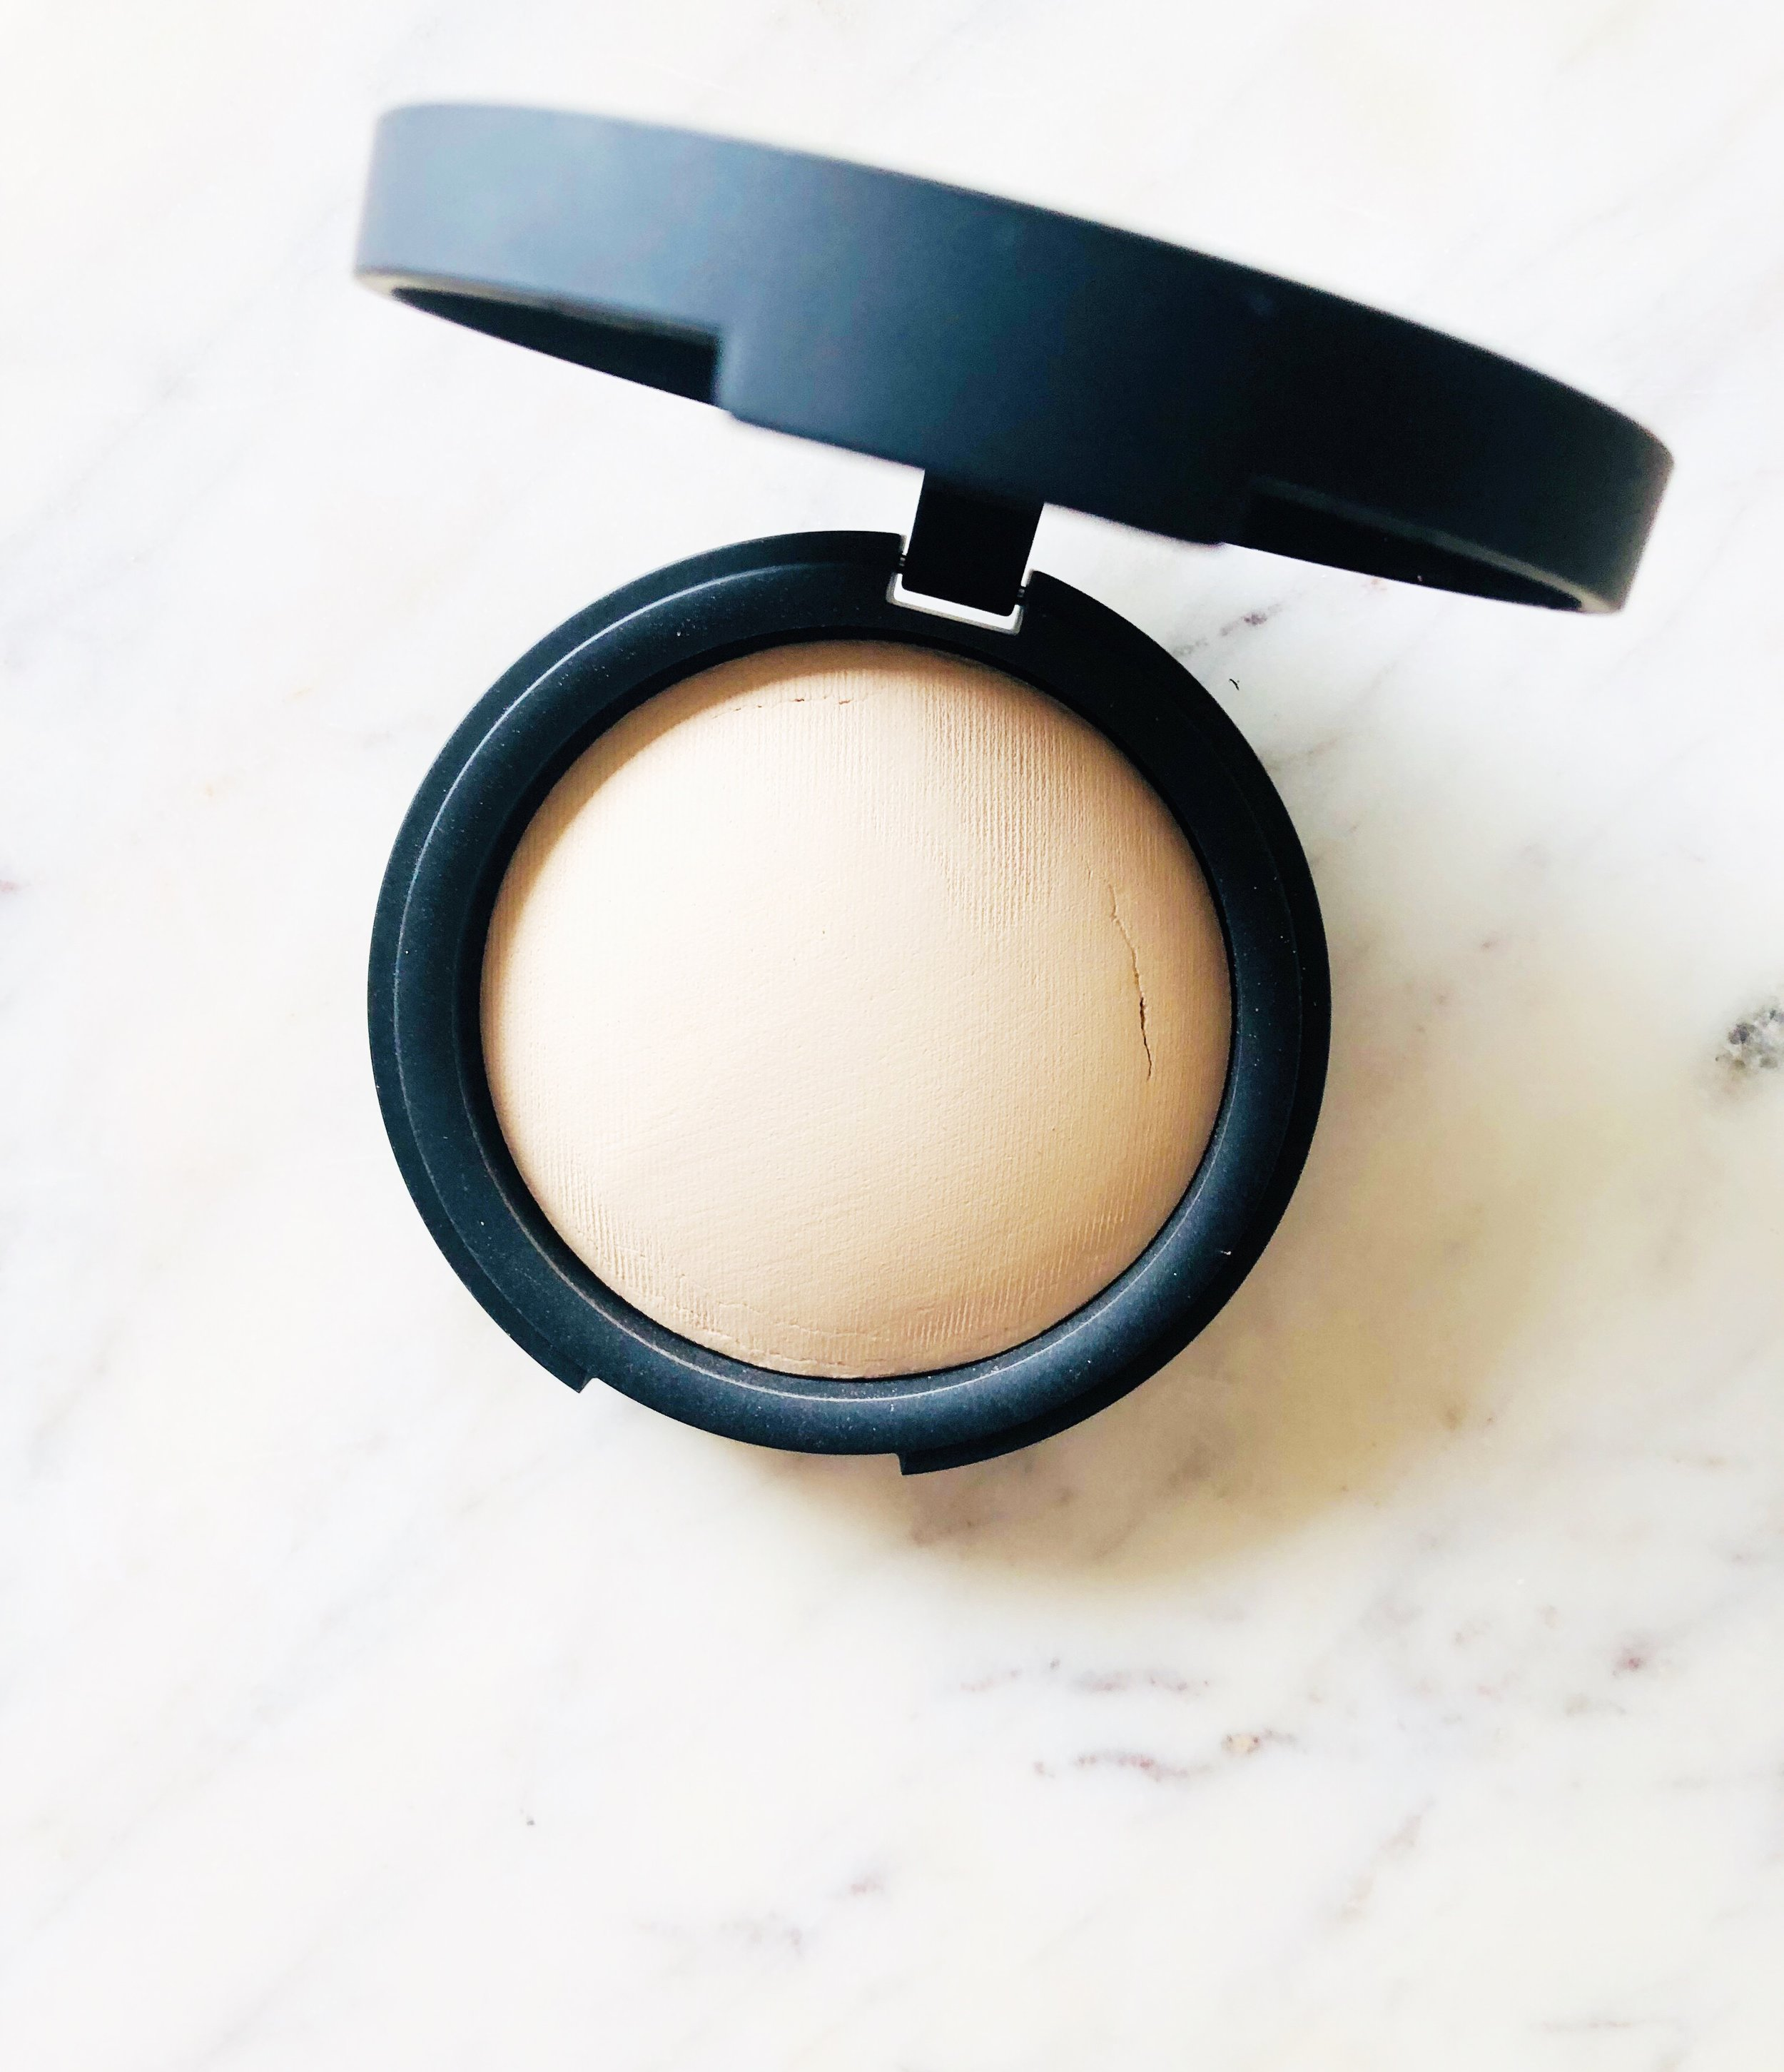 INIKA Organic Baked Mineral Foundation in Grace - $48.99 - Here's the quick SCORECARD breakdown. Each question is rated on a scale of 1 to 5, 5 being the best:1. How do the ingredients look (EWG.org ratings)?- 5: Everything looked good on EWG. There was only one '3' and it was Potassium Sorbate.2. How's coverage?- 5: Skin still looks like skin! This powder is super fine and silky. It offers a light to medium coverage, and didn't look 'cakey' on my skin at all.3. Does it last?- 4: It stuck around for the entire day when applied on top of moisturizer.4. Is it non-irritating?- 5: No issues here!5. Does it build and blend well with other products?- 5: Absolutely. It evens out with every layer, and doesn't sit on top of the skin. Pretty amazing!6. Is the shade range inclusive?- 4: Having 12 shades available is a solid start. I hope it keeps expanding as the brand grows.7. How conscious is the brand? 4- Cruelty-free, sustainable, etc.- All I need now is glass or more sustainable packaging!FINAL SCORE:32/35